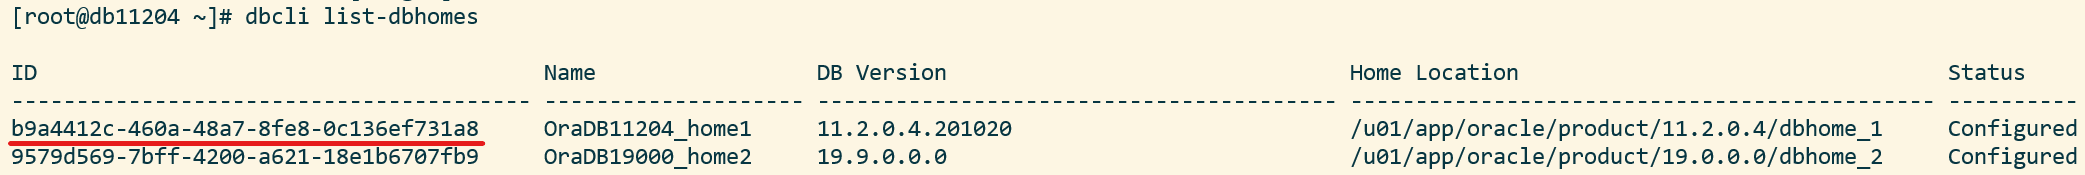 Output from dbcli command that list all Oracle Homes - list-dbhomes